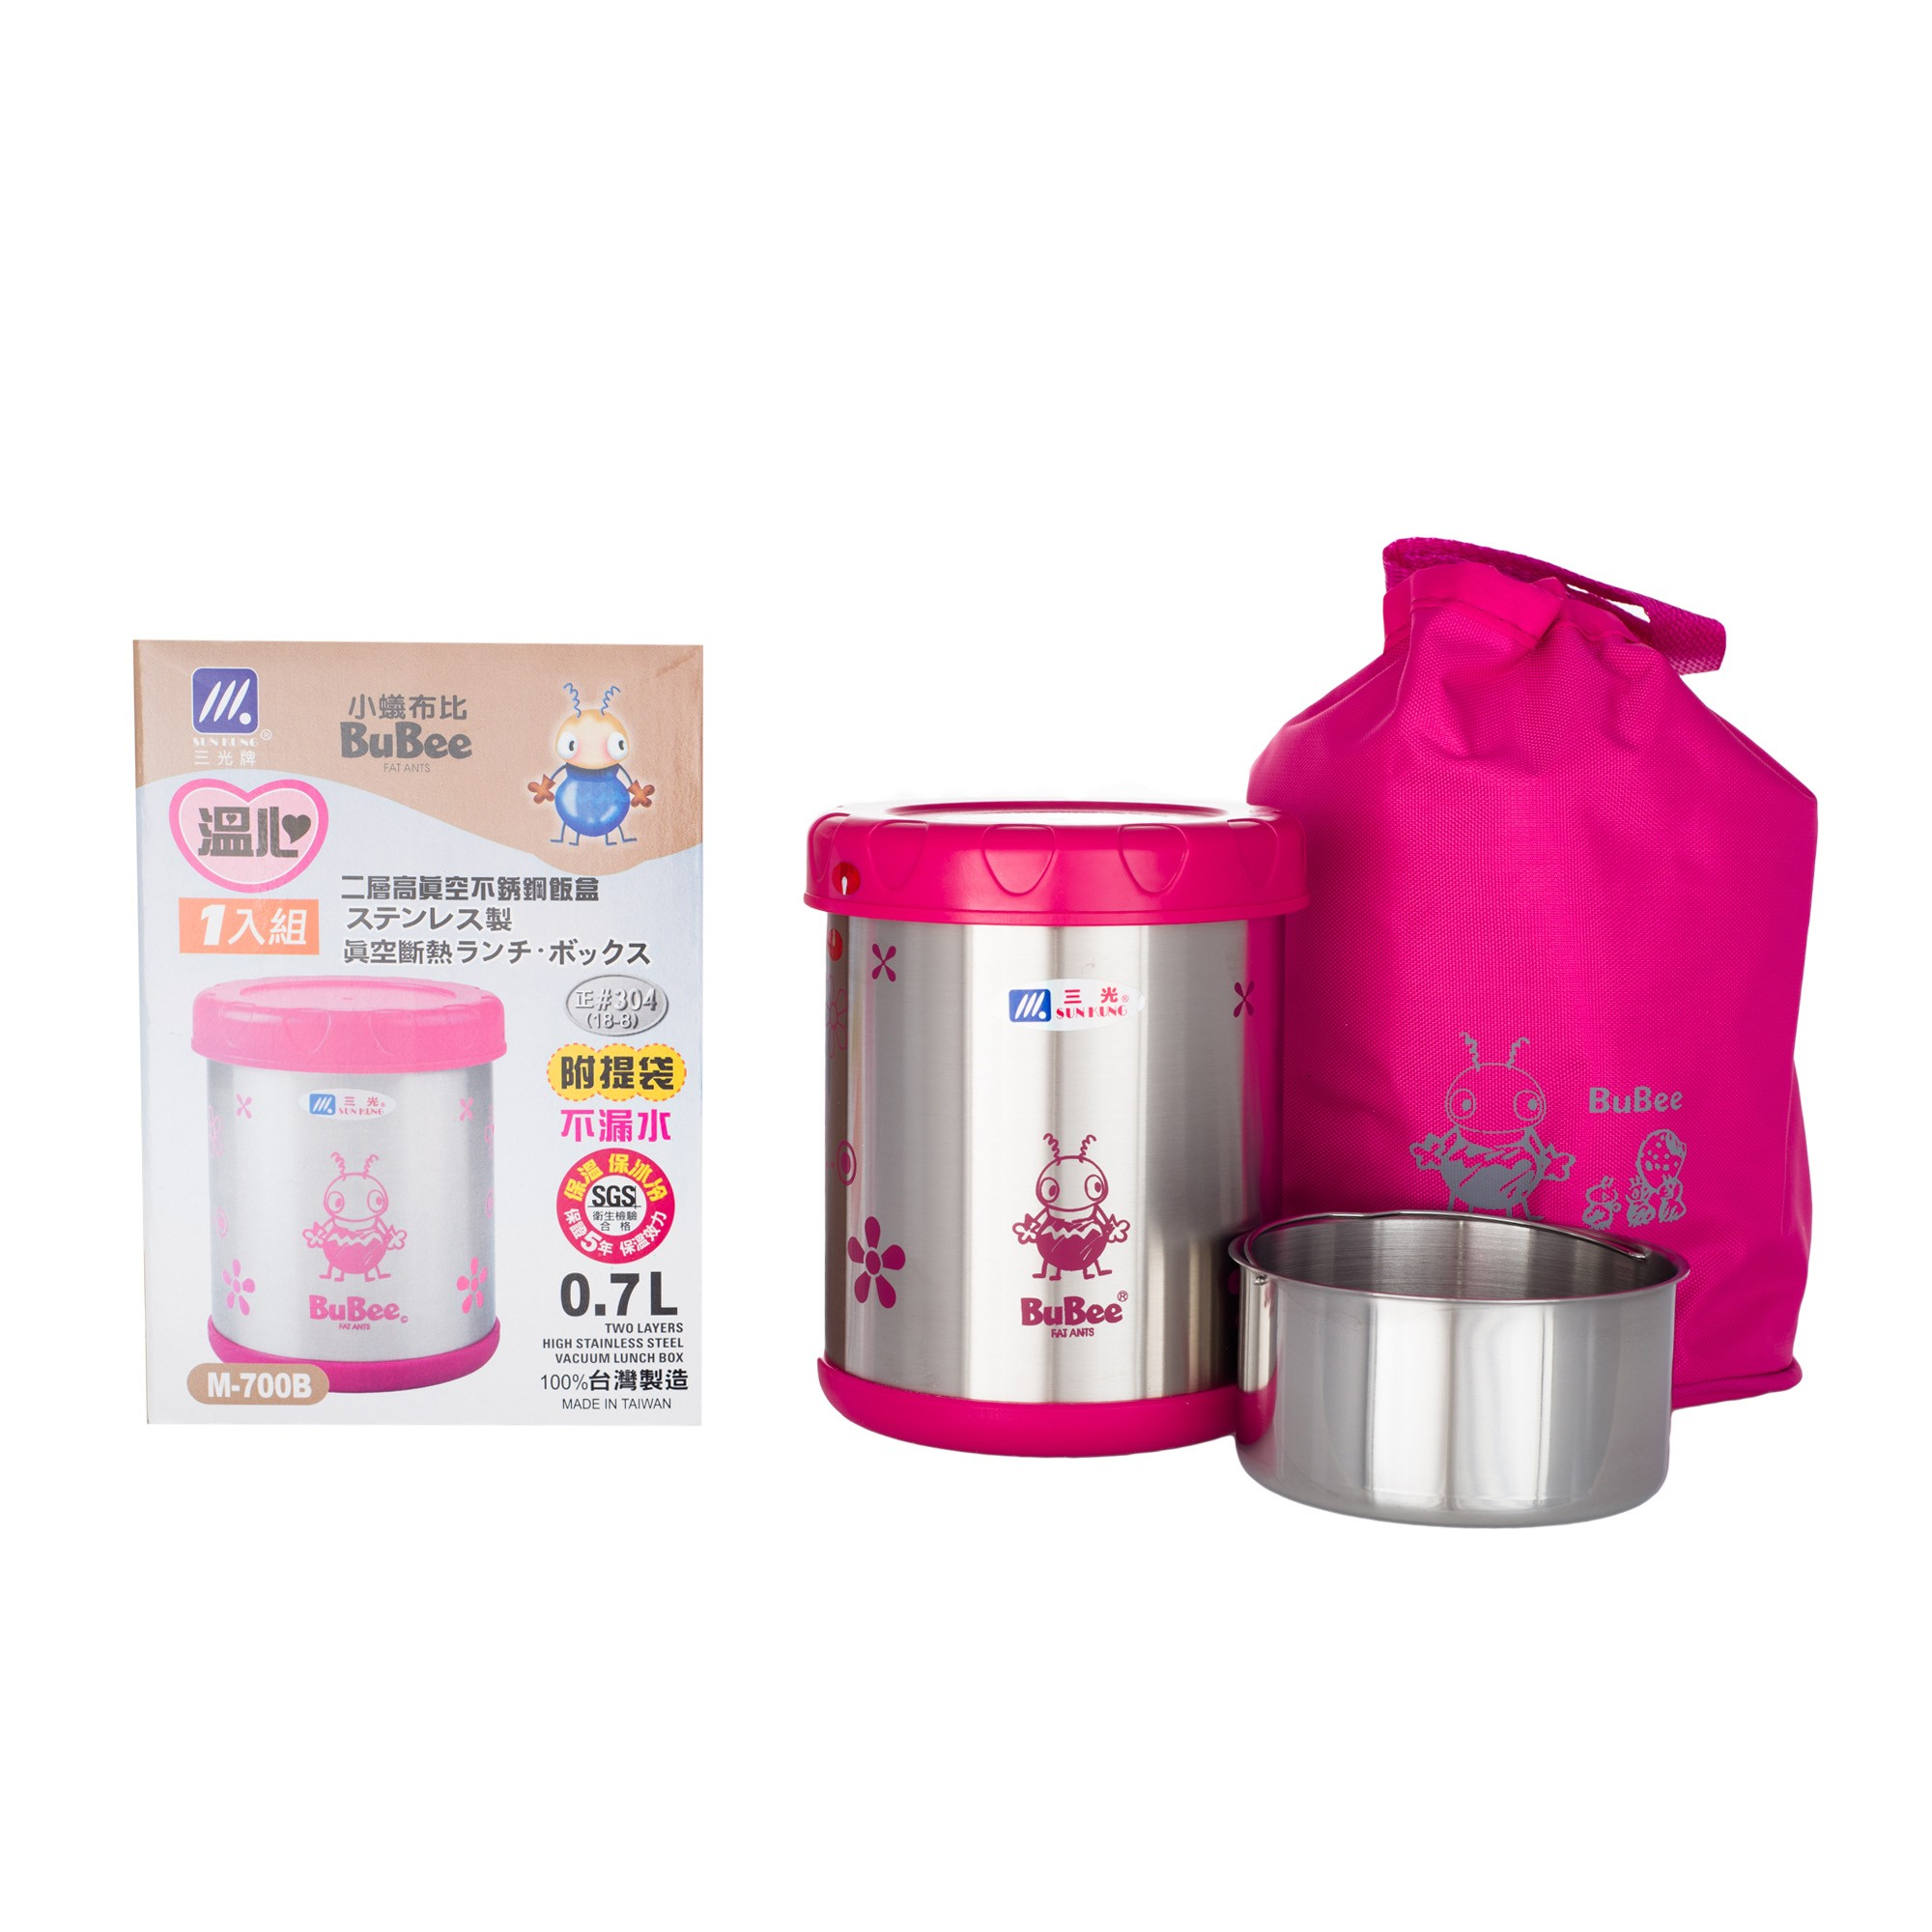 Buy Bubee Online Shop Best Price At Malaysia Thermos Panas Clifia 1 L Lion Star M700b Double Layer Vacuum Lunch Box 07l Pink